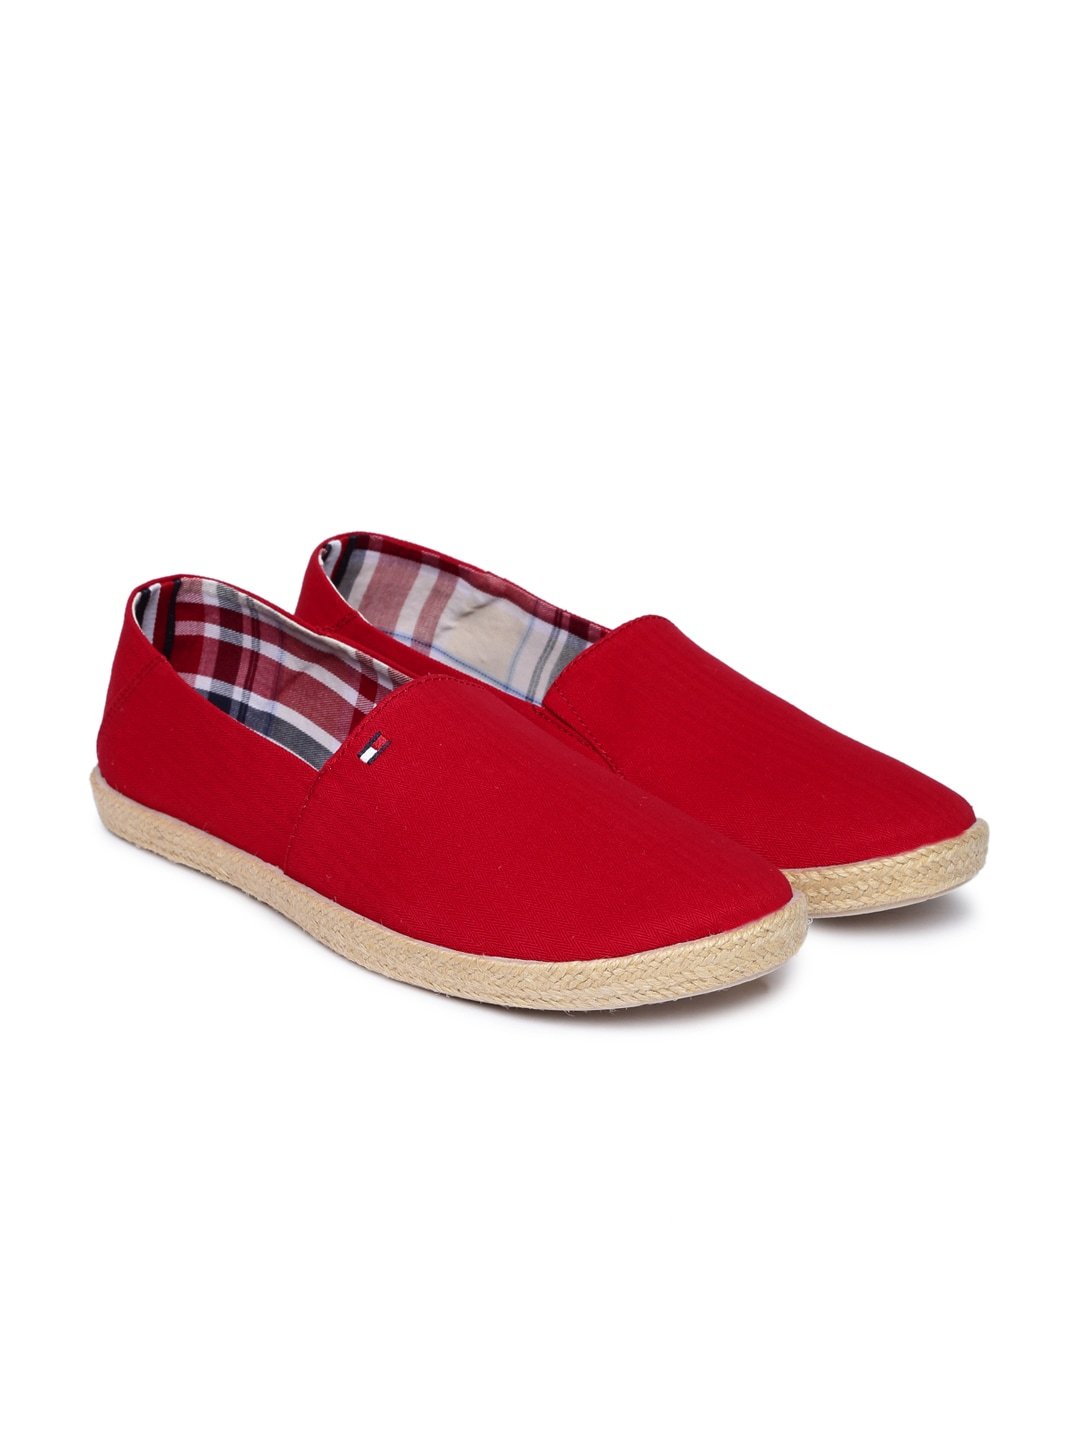 613d5ebb1 Buy Lacoste Men Red Slip On Sneakers - Casual Shoes for Men 7342570 ...